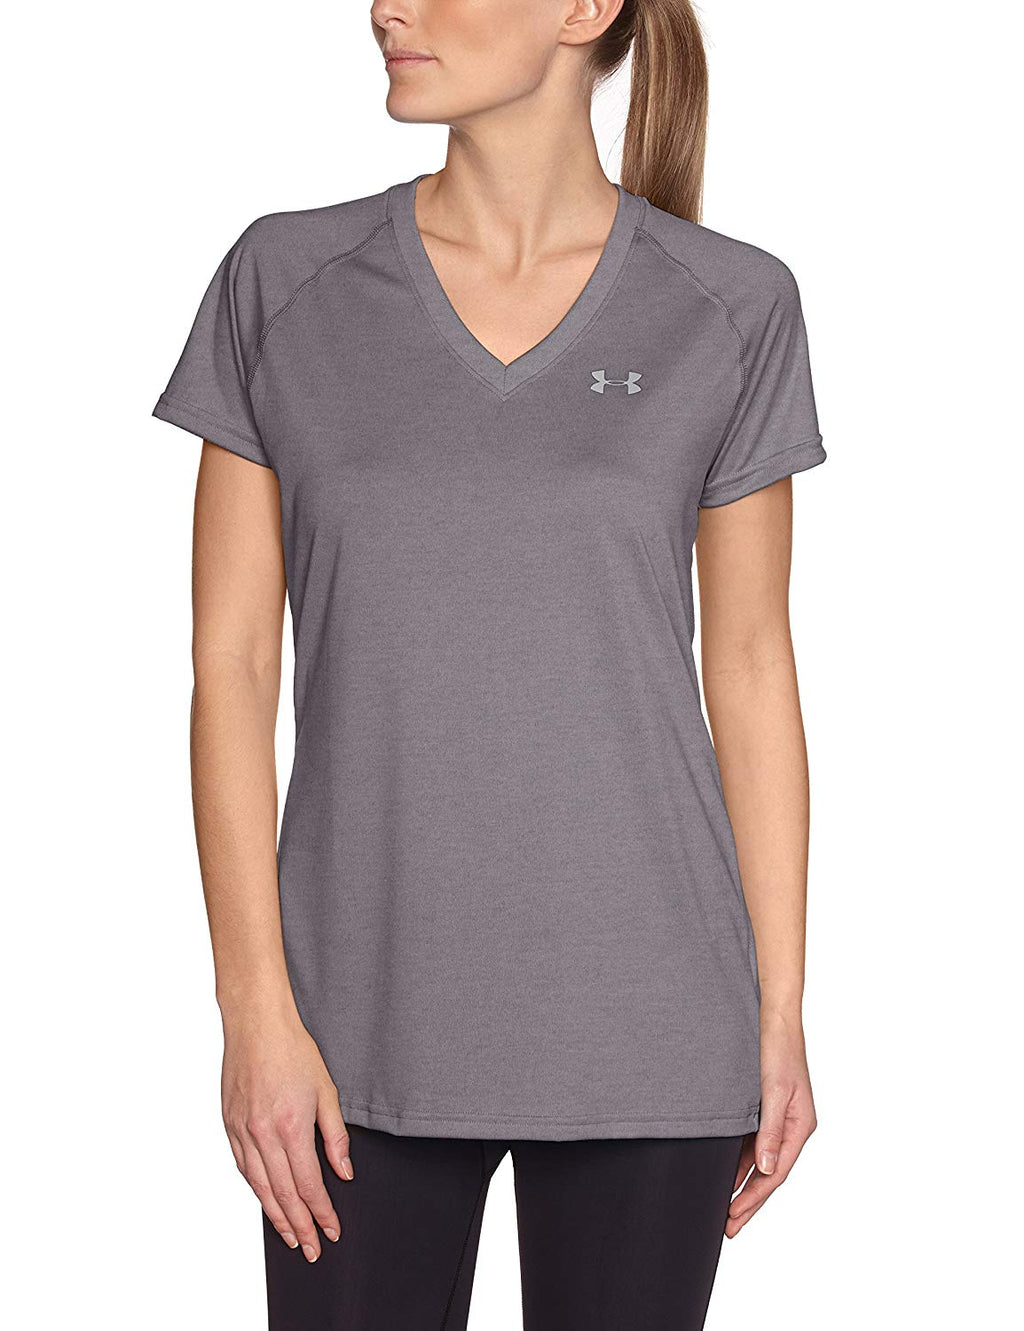 Under Armour Tech Short Sleeve V-Neck Ladies T-Shirt